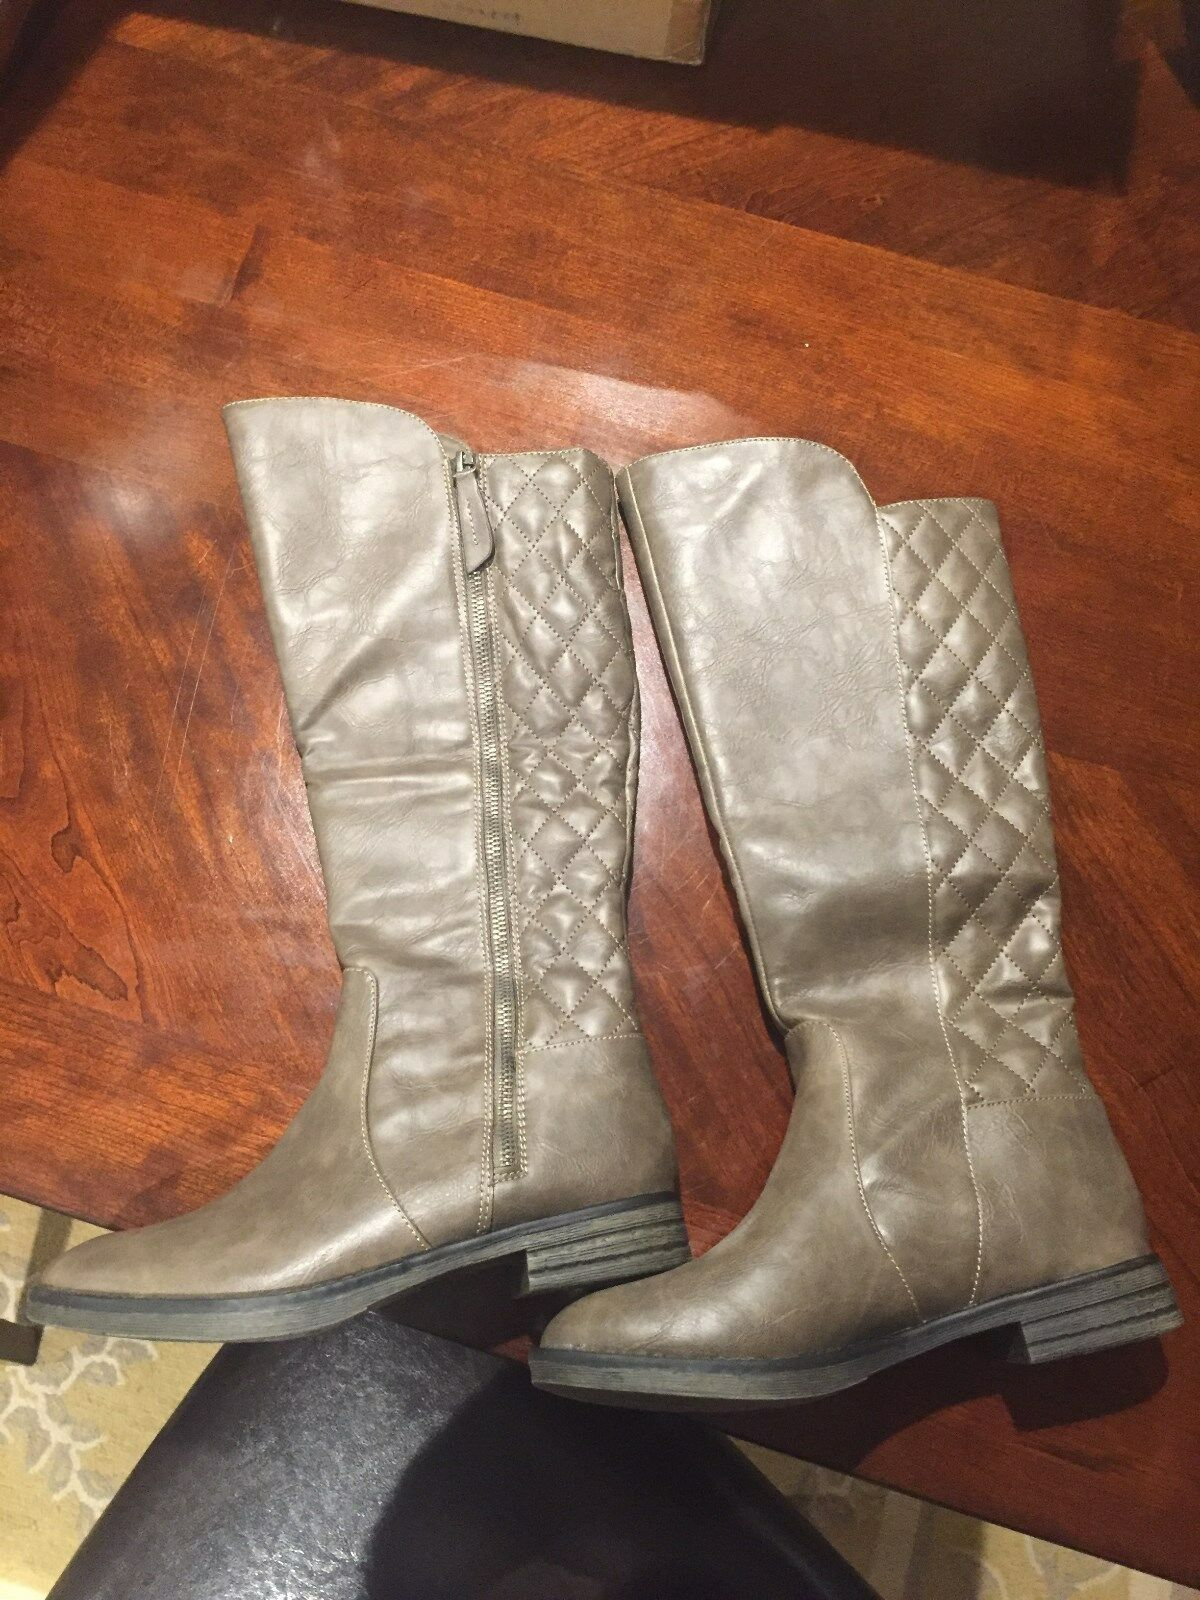 Mia Trudy Knee High Boots in Taupe size 7